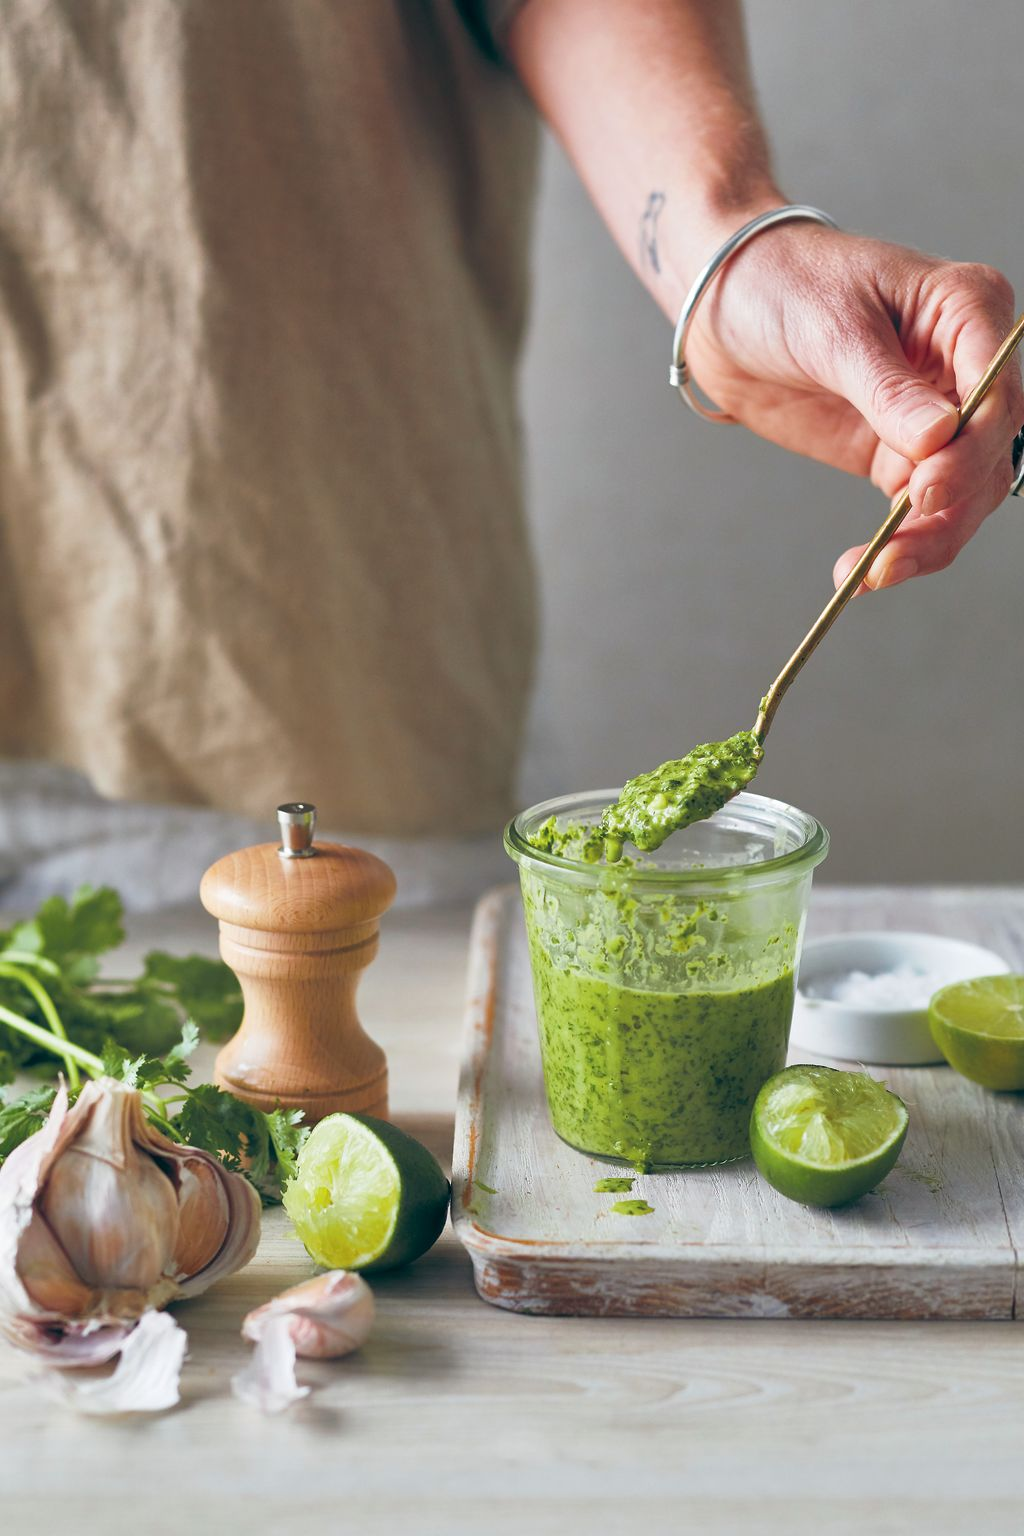 Coriander Lime and Garlic Dressing by Urban Growers.